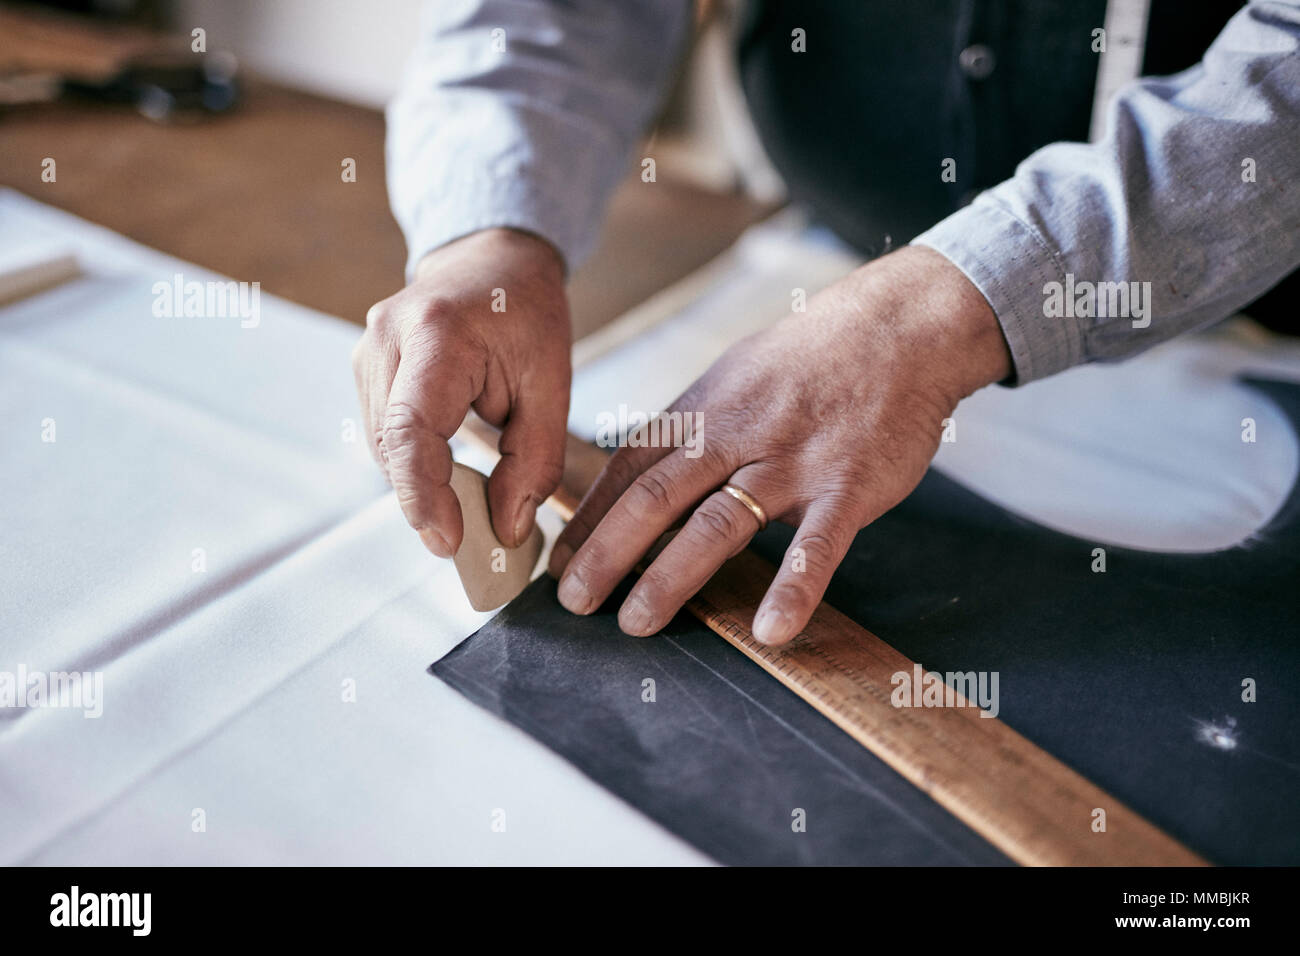 Tailor using chalk and ruler to outline pattern on fabric - Stock Image